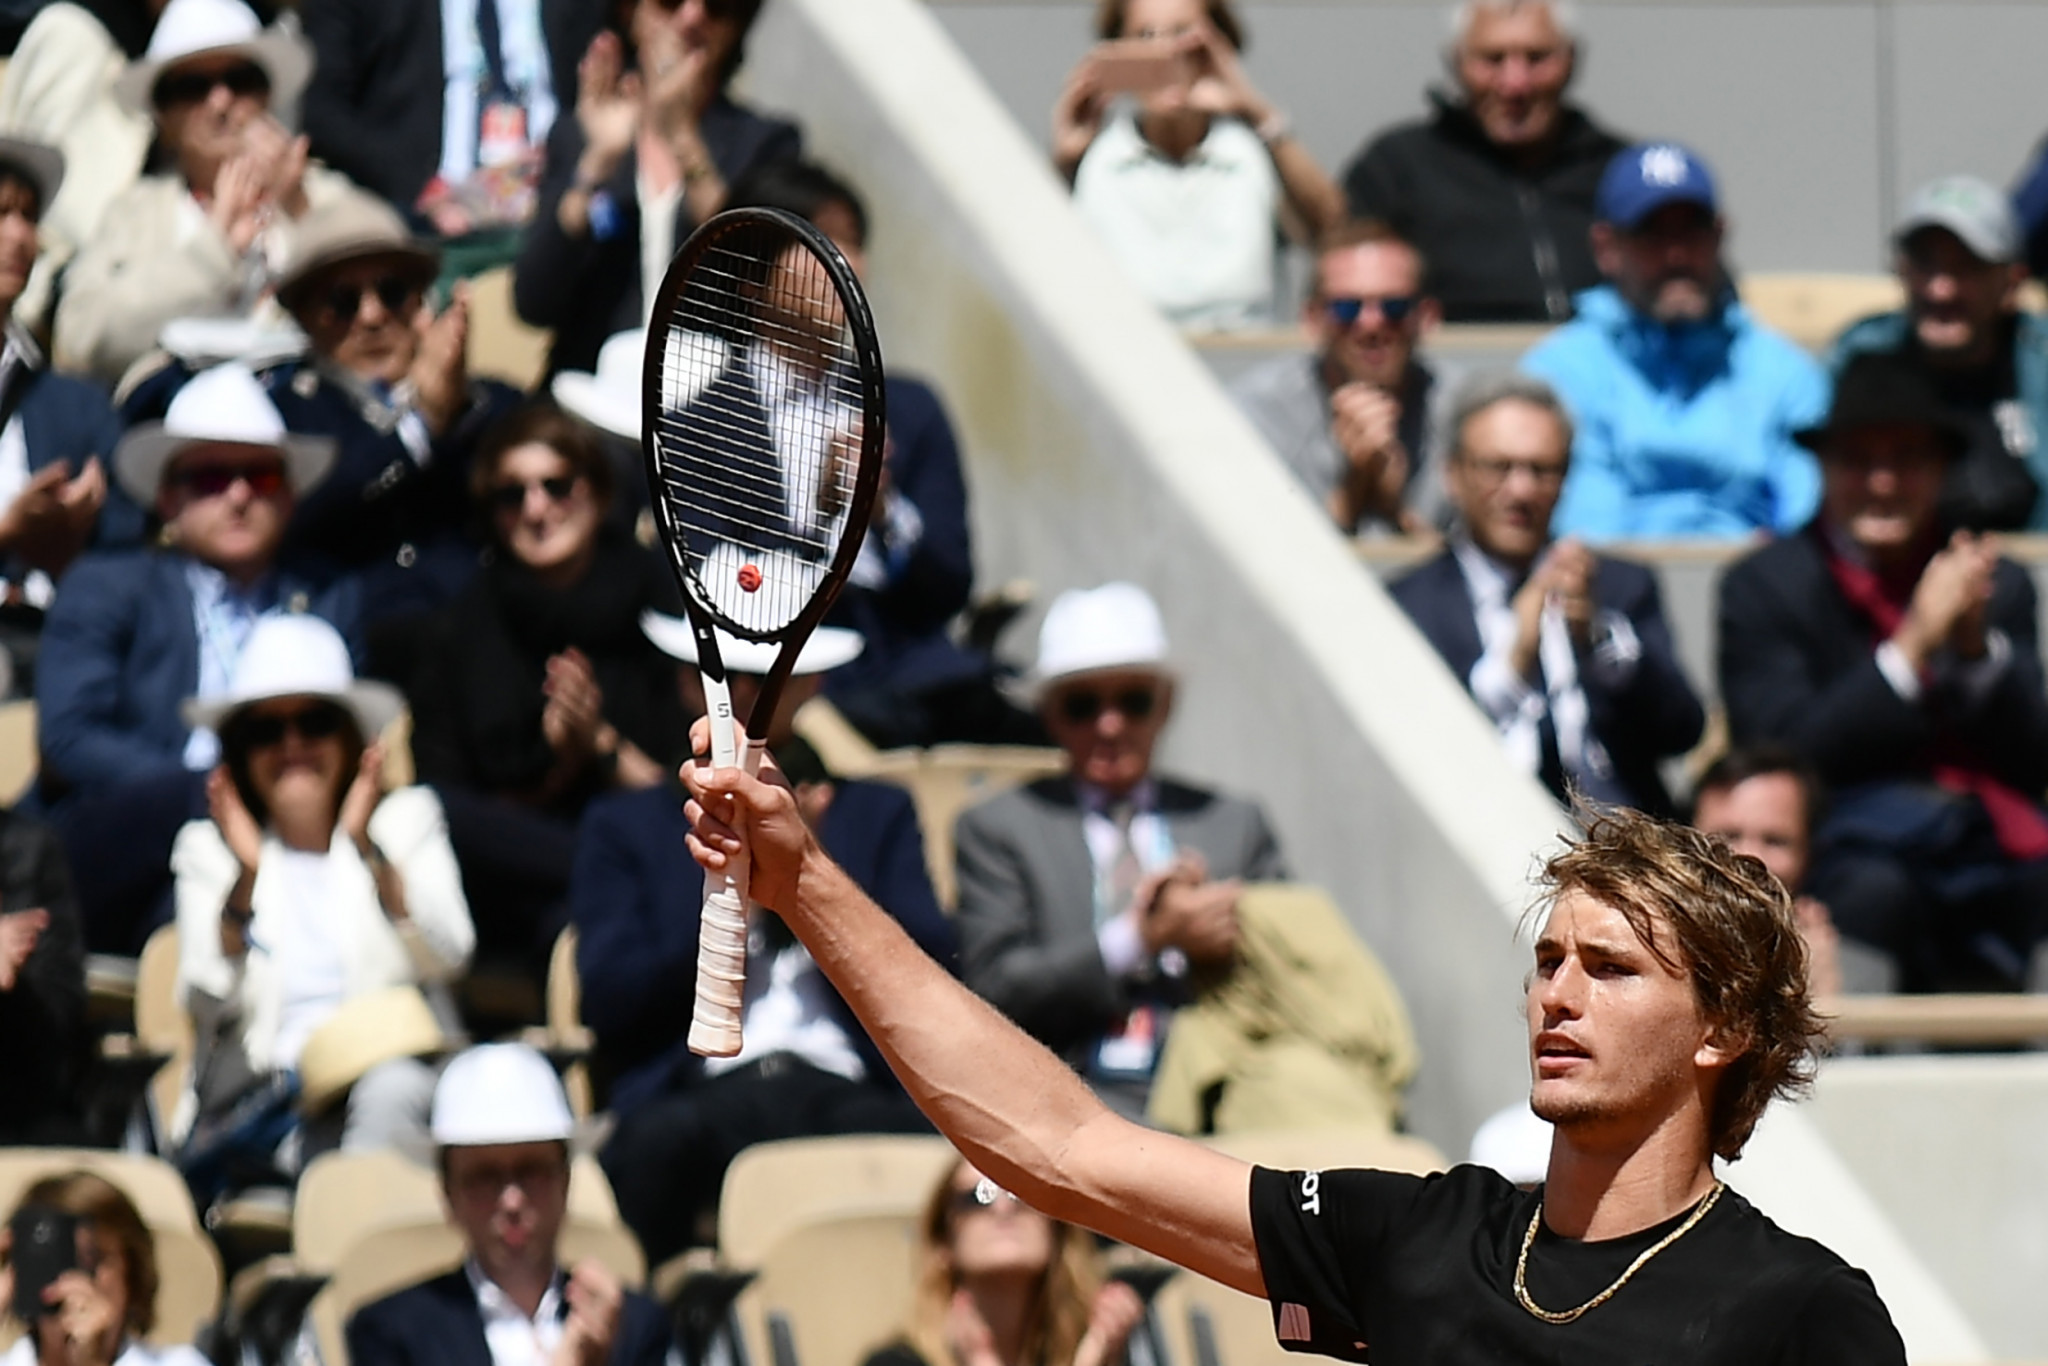 Zverev battles through frustration to reach second round  at French Open